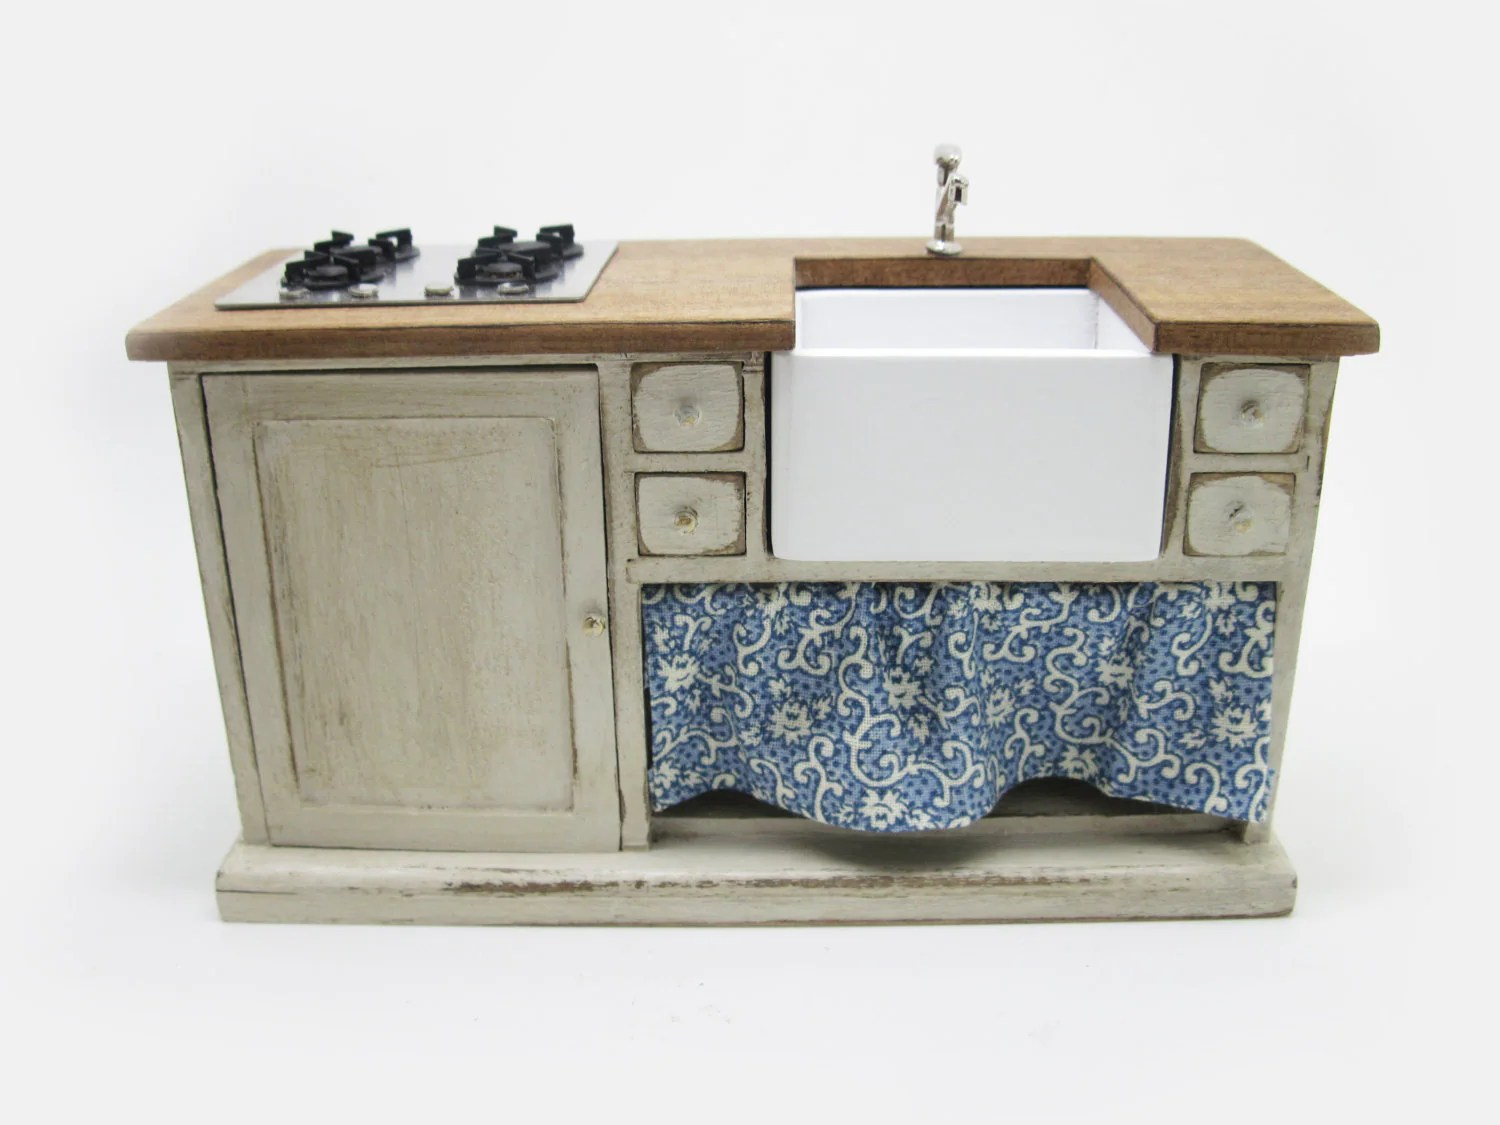 Spülenschrank Antik Miniature Dollhouse Furniture Sink Cabinet With Steel Hob